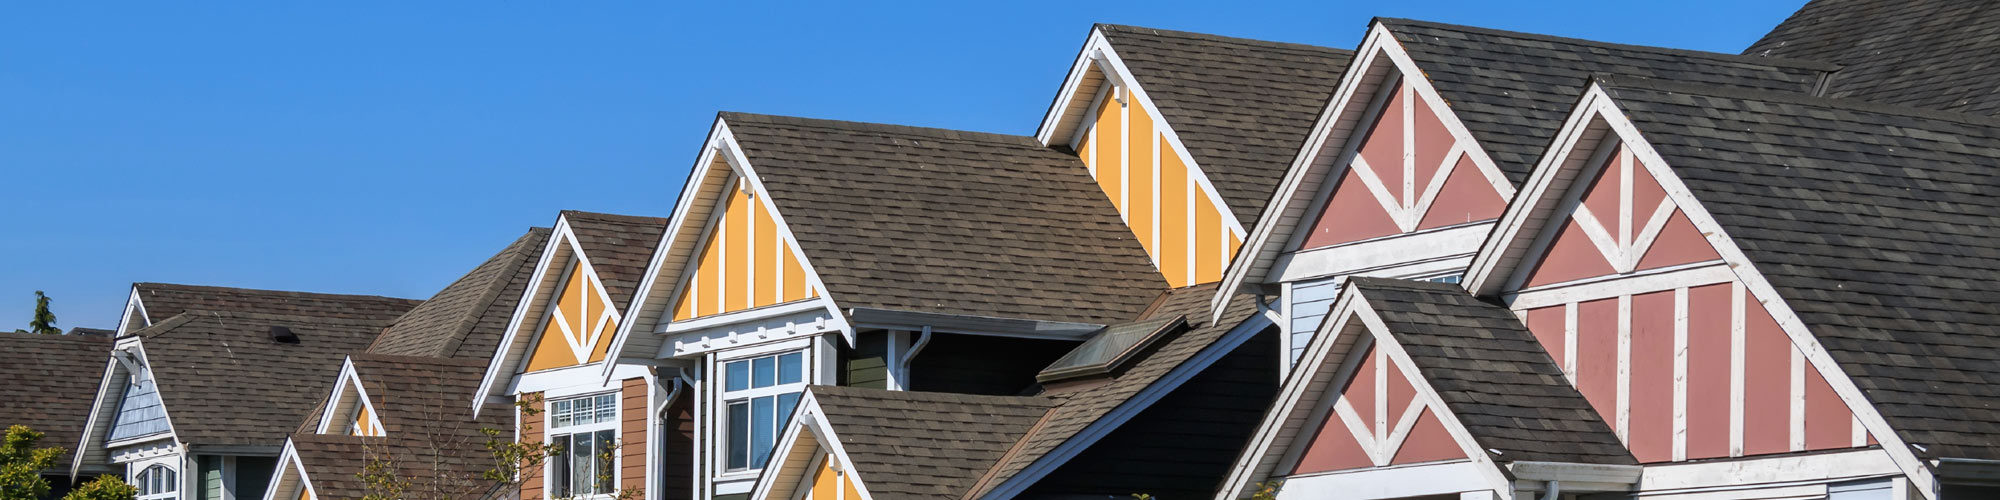 residential-roofs